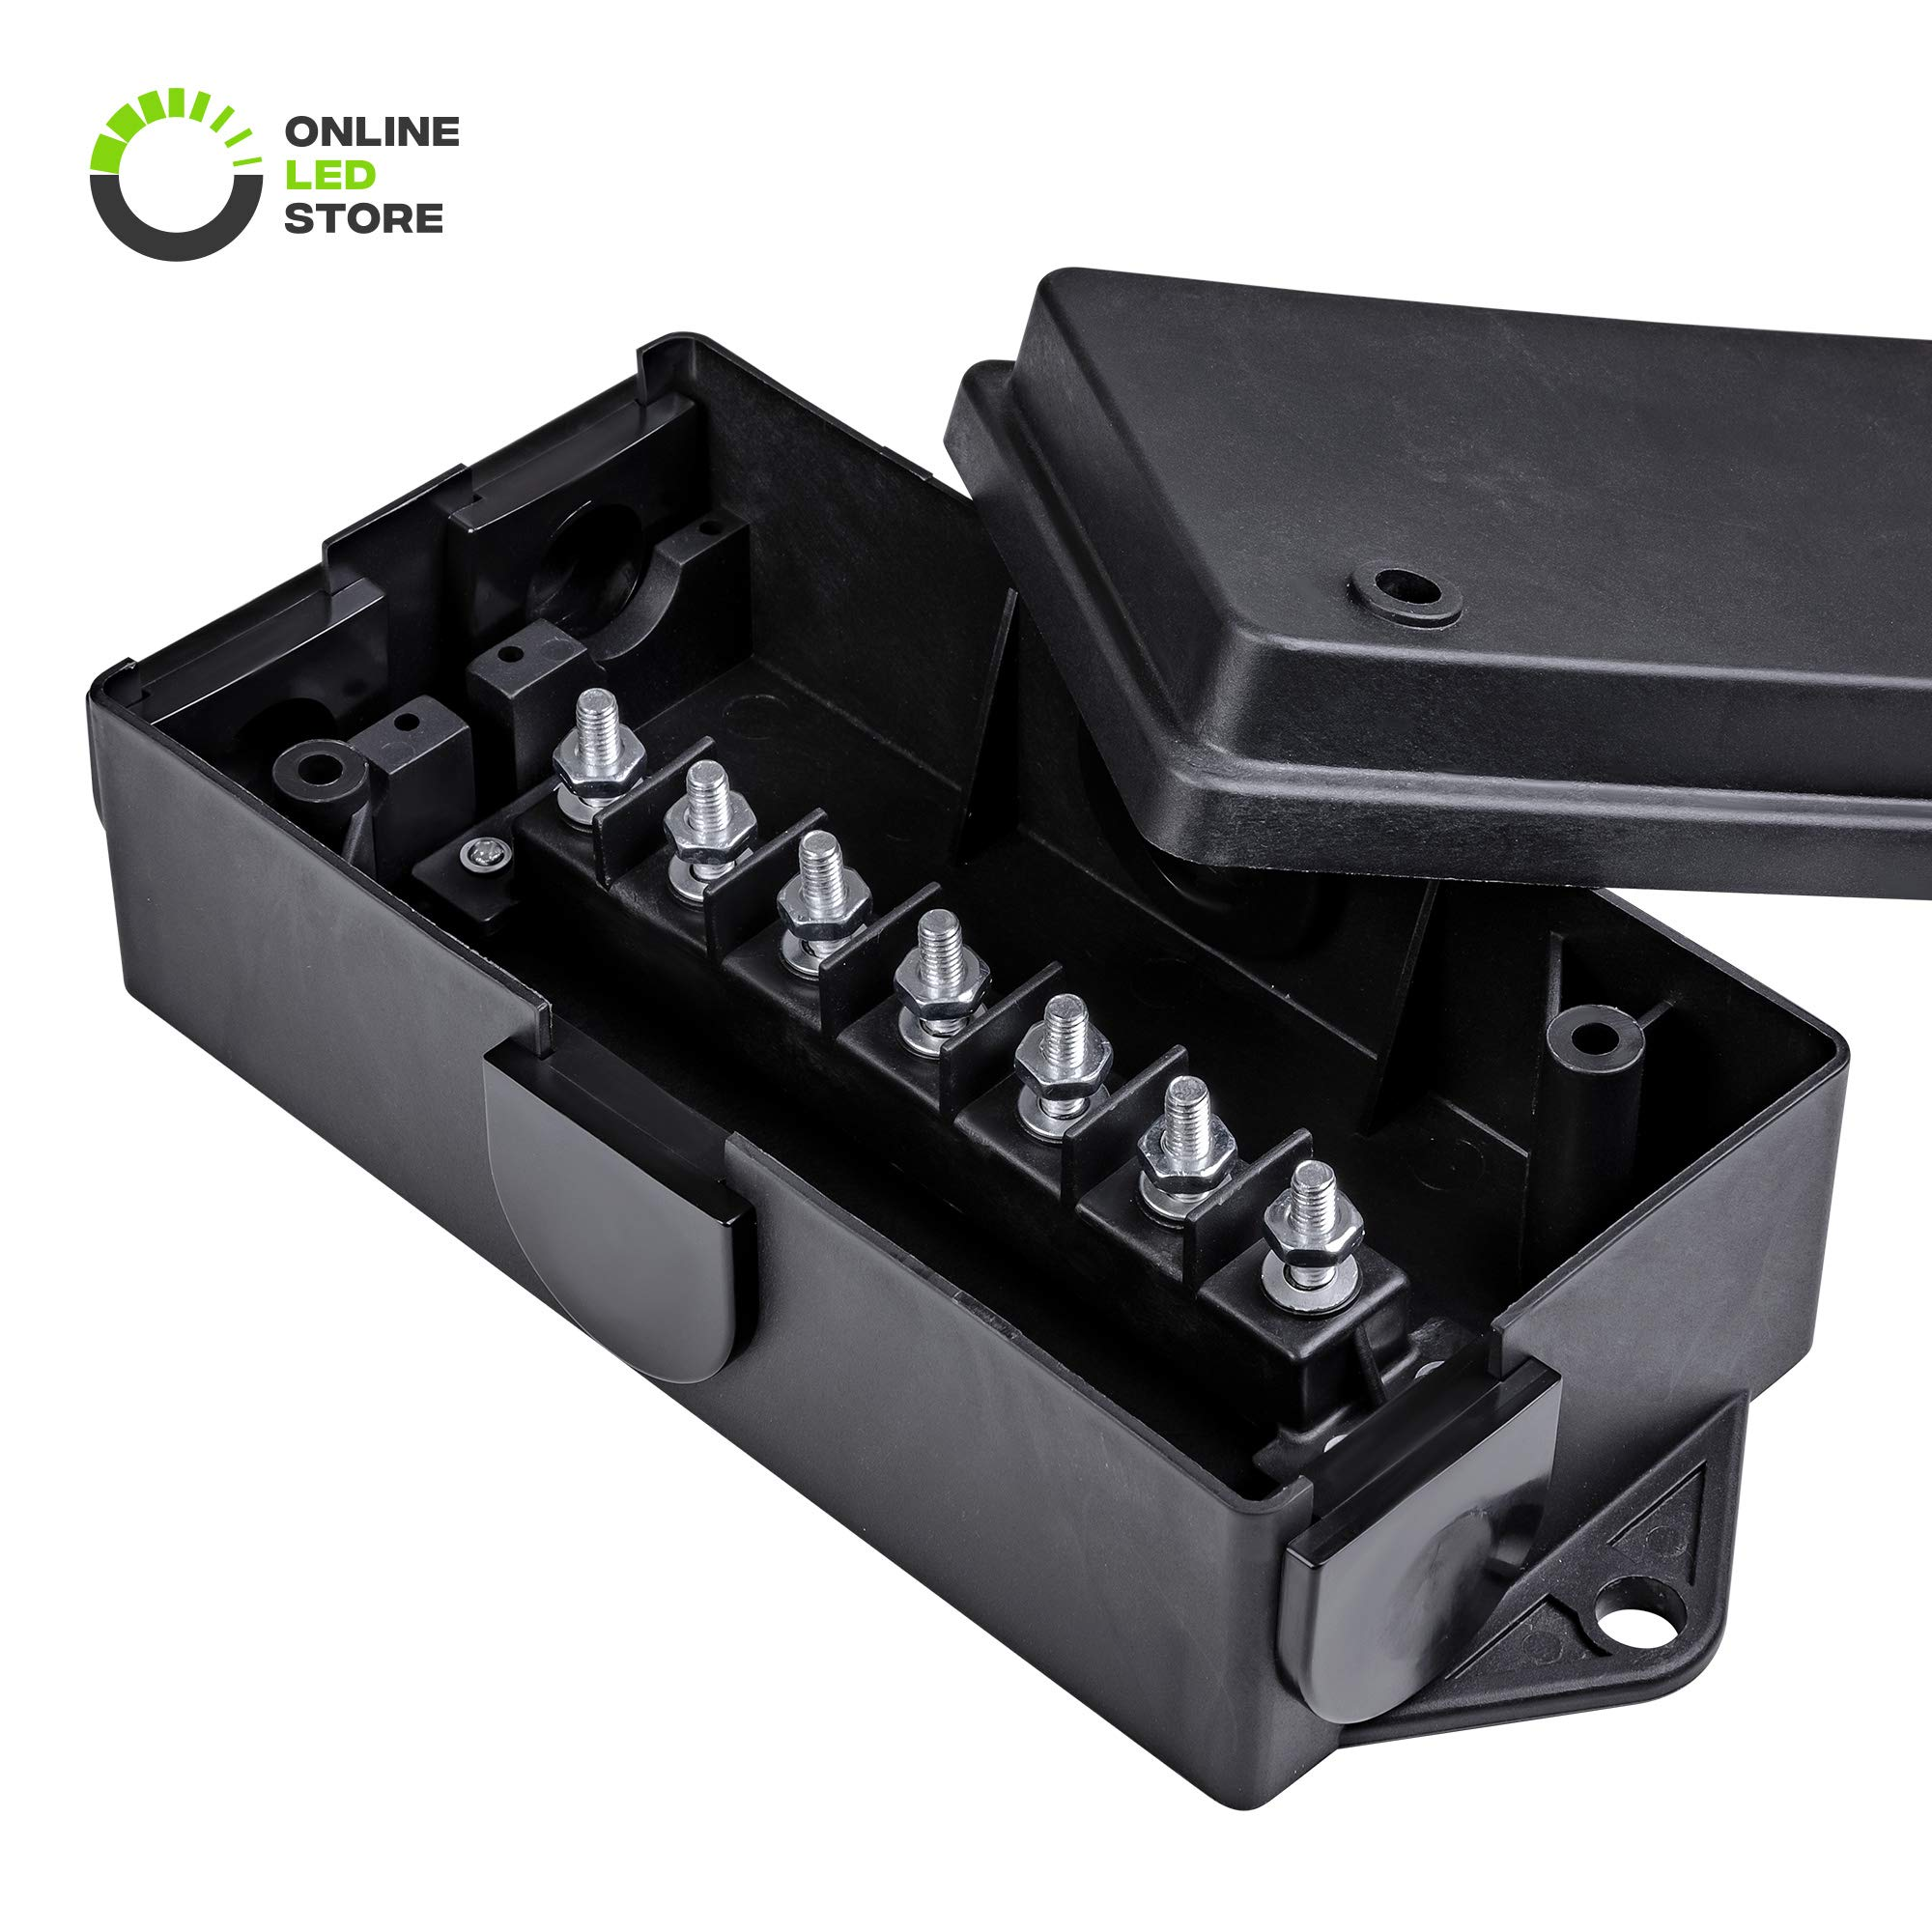 ONLINE LED STORE 7-Port Trailer Wiring Junction Box [Steel Studs] [Stickers Included] [Weatherproof] Trailer Wire/Cable Connection Box by ONLINE LED STORE